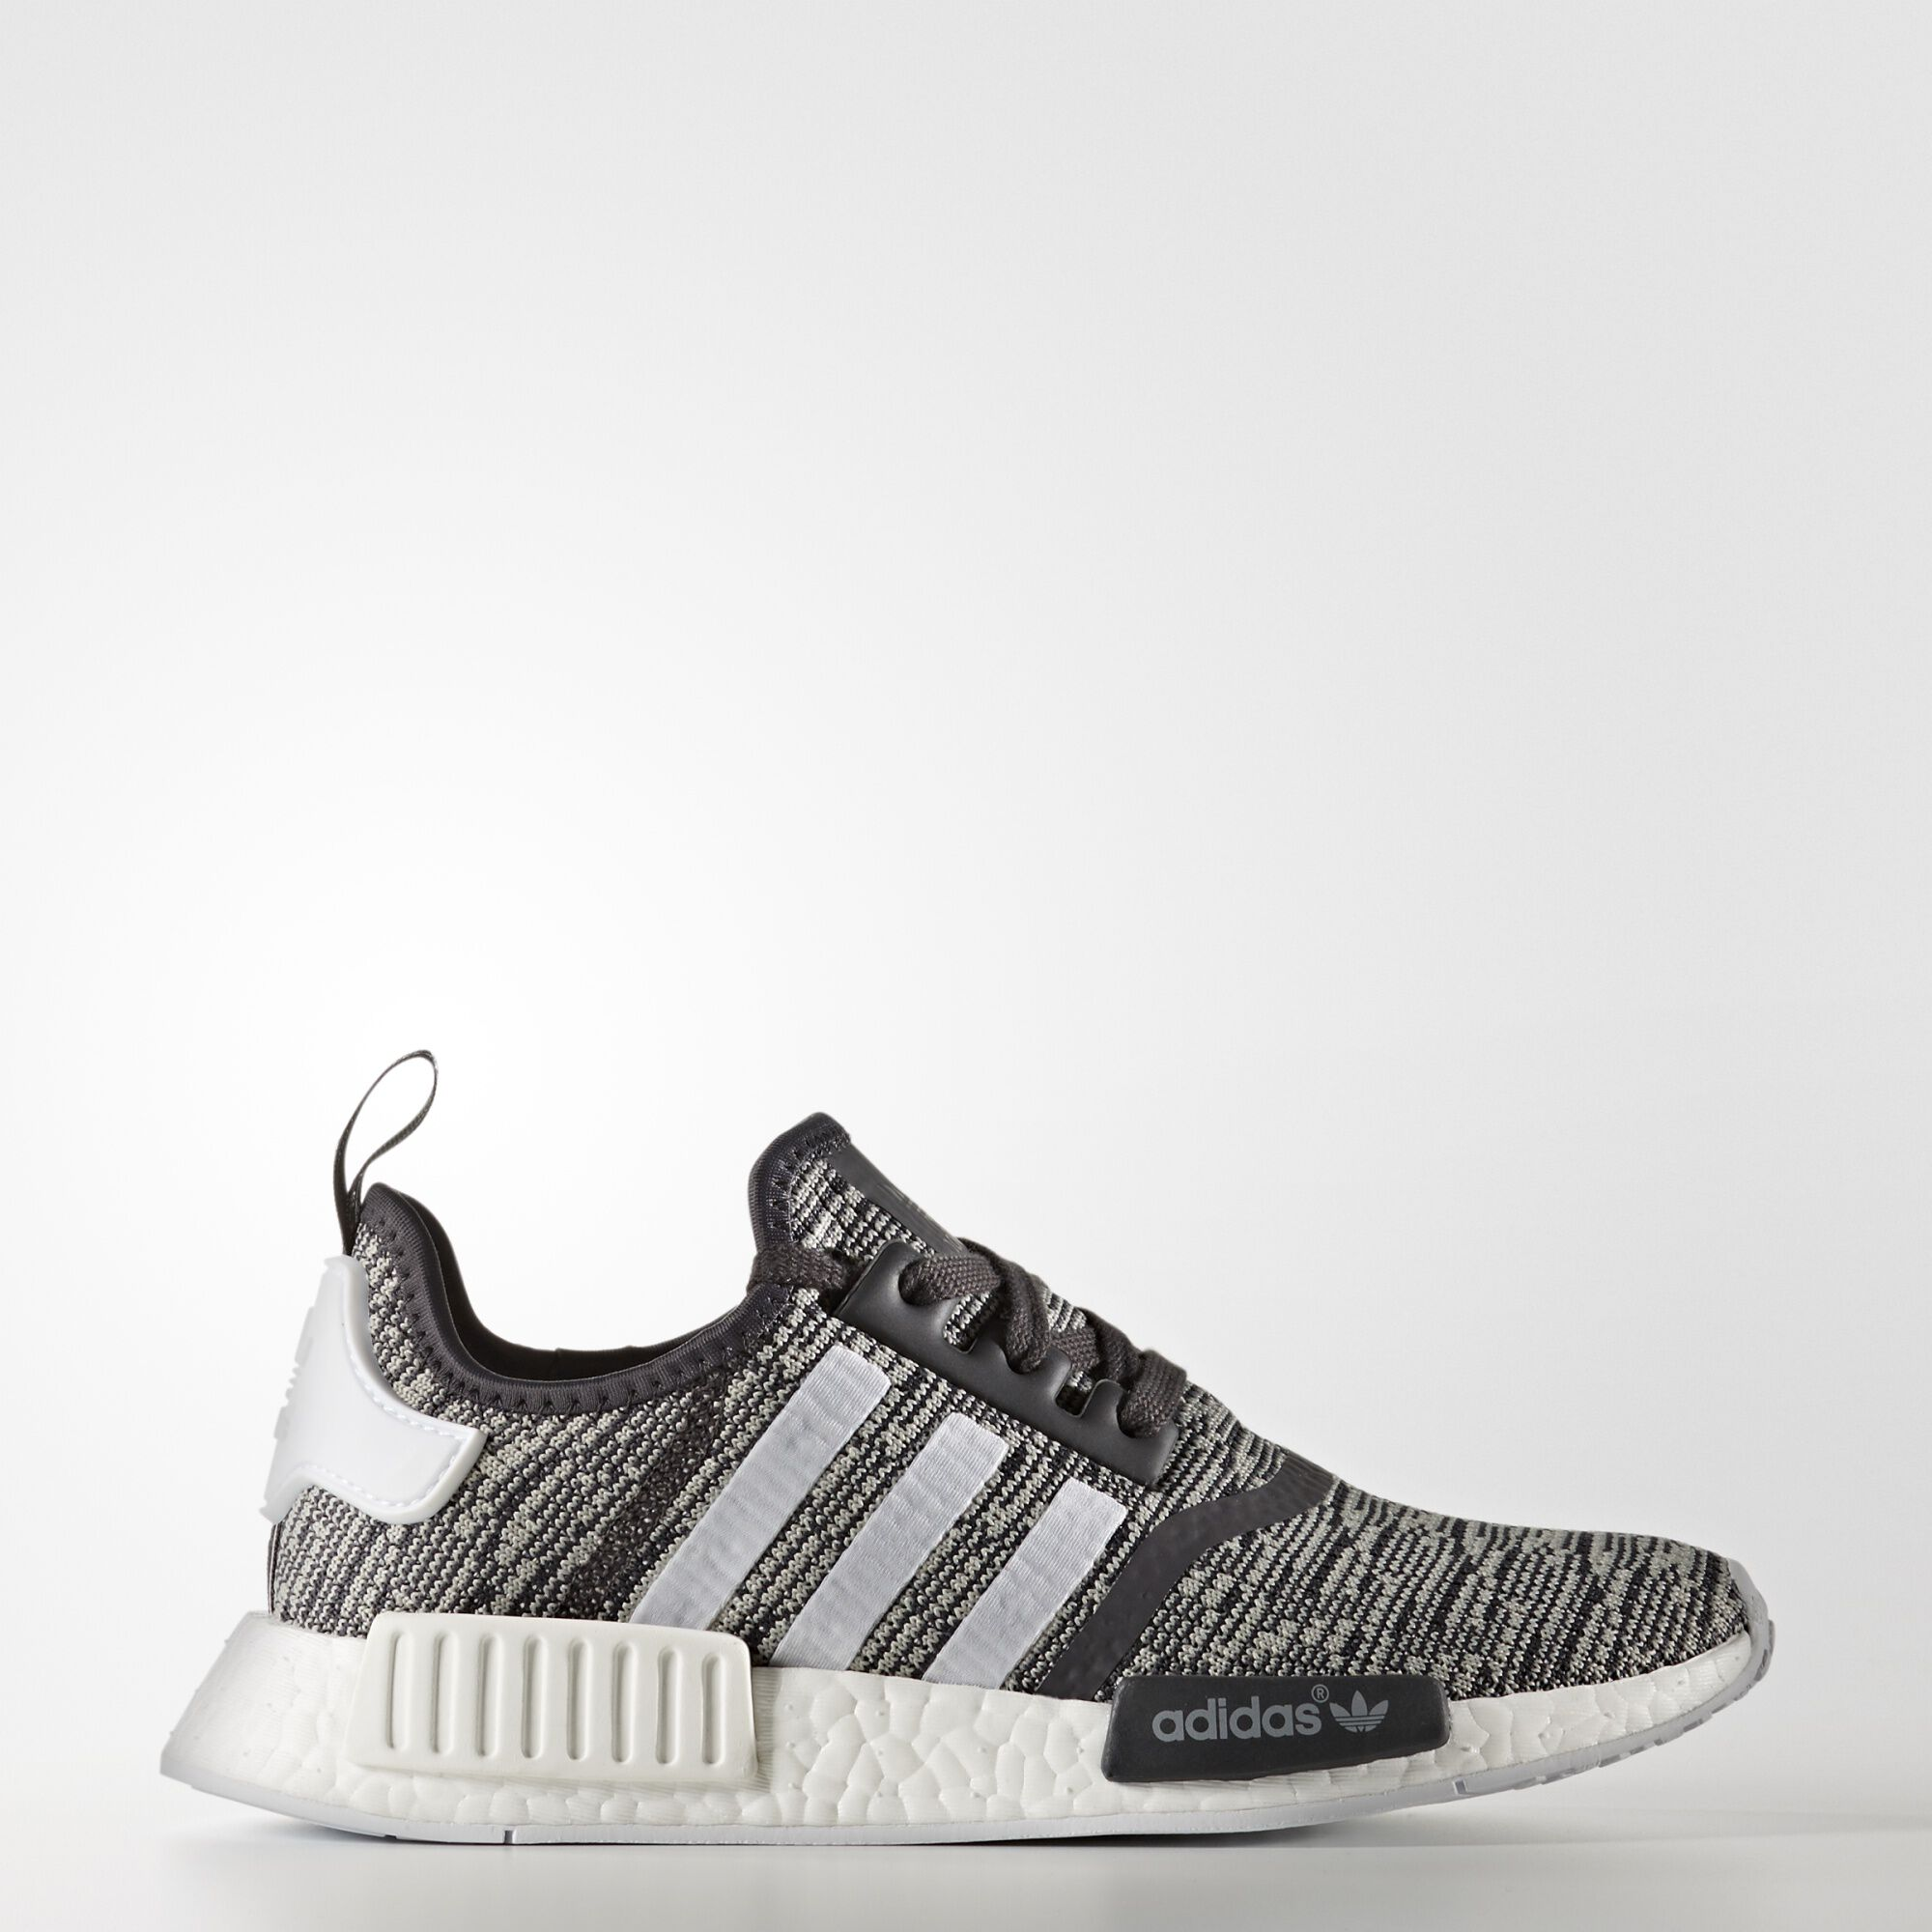 adidas nmd blanche